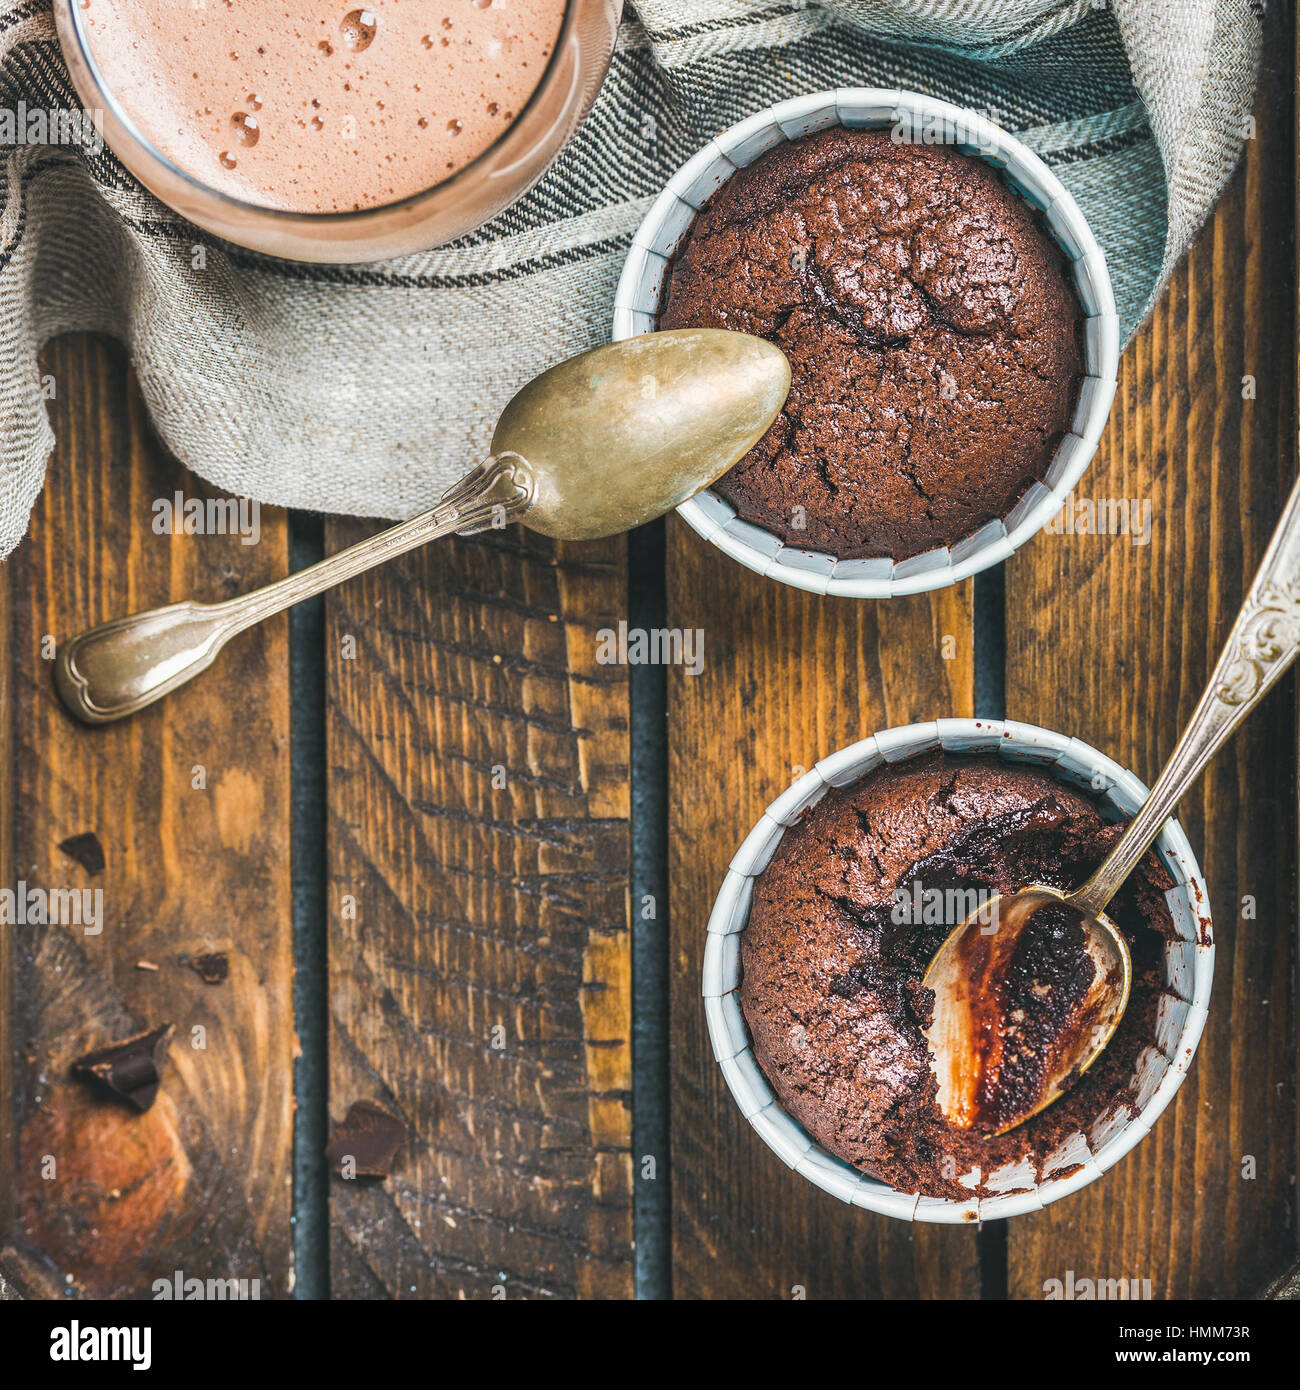 Chocolate souffle in baking cups and mocha coffee, square crop - Stock Image